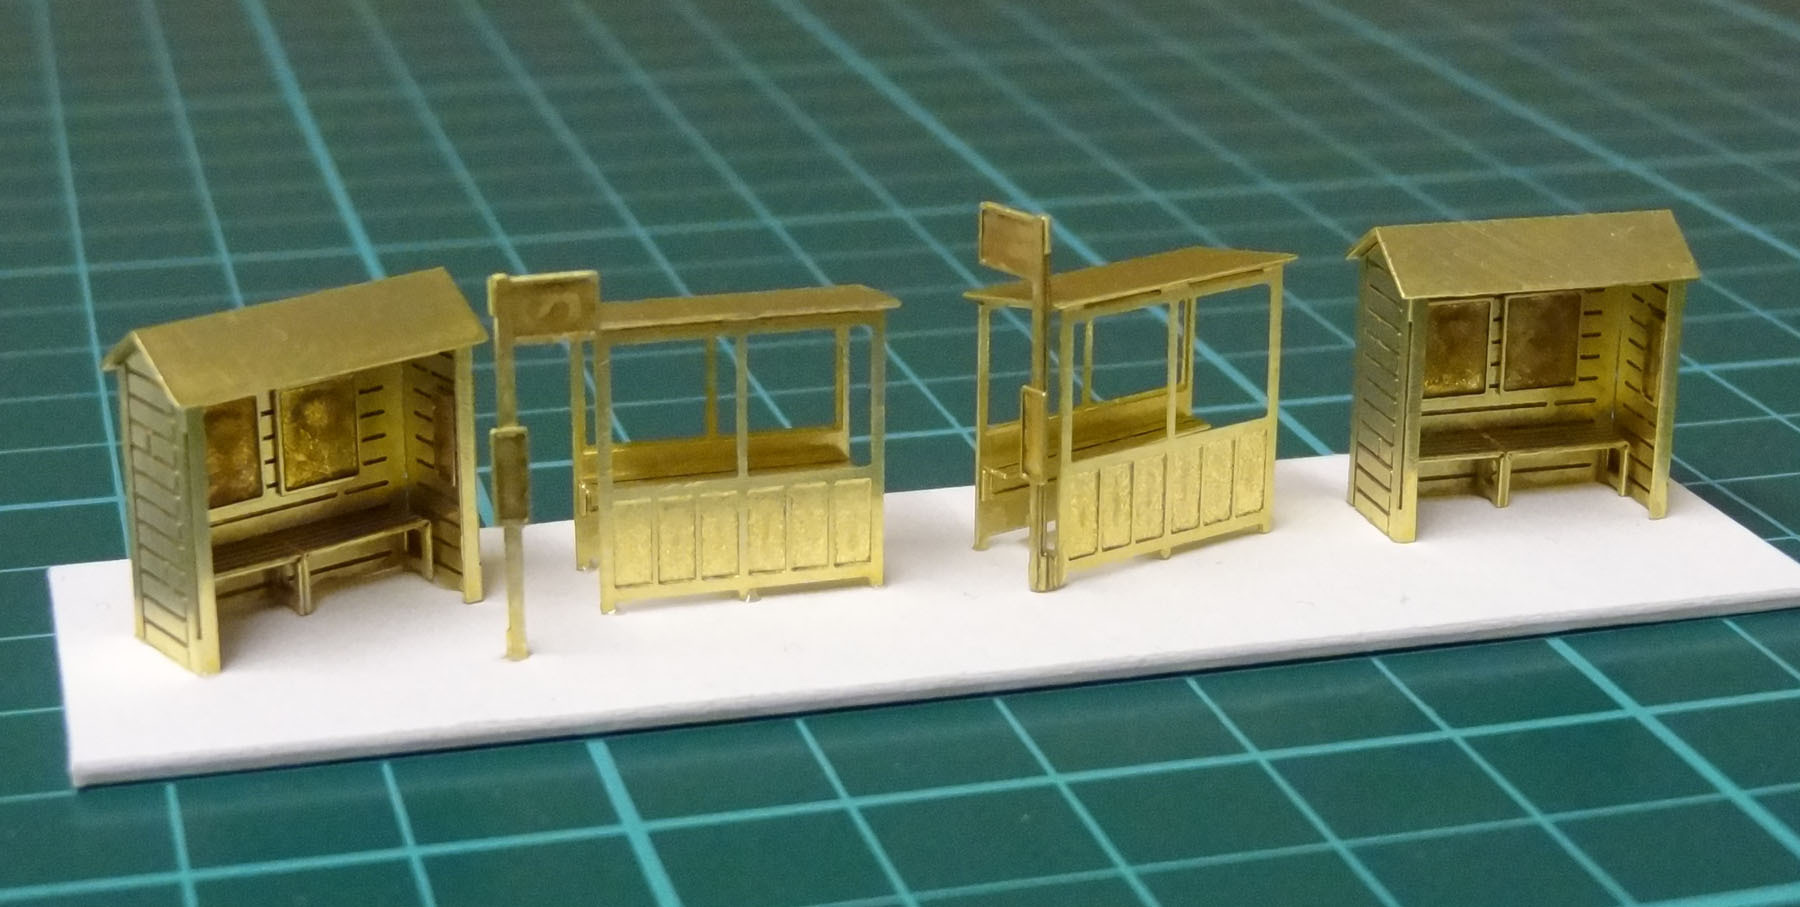 N18 Set of 4 Shelters